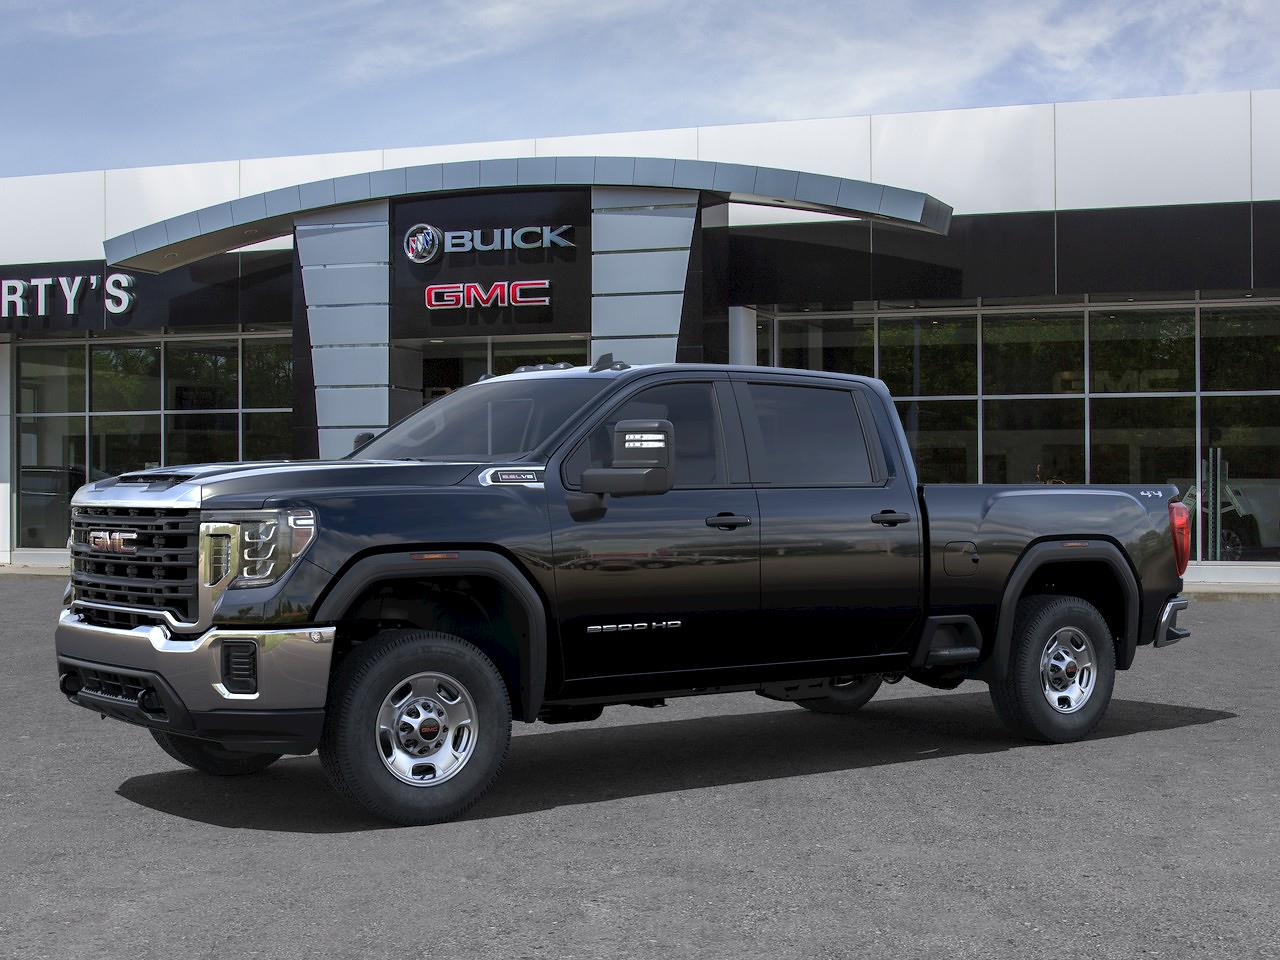 2021 GMC Sierra 2500 Crew Cab 4x4, Pickup #221388 - photo 23